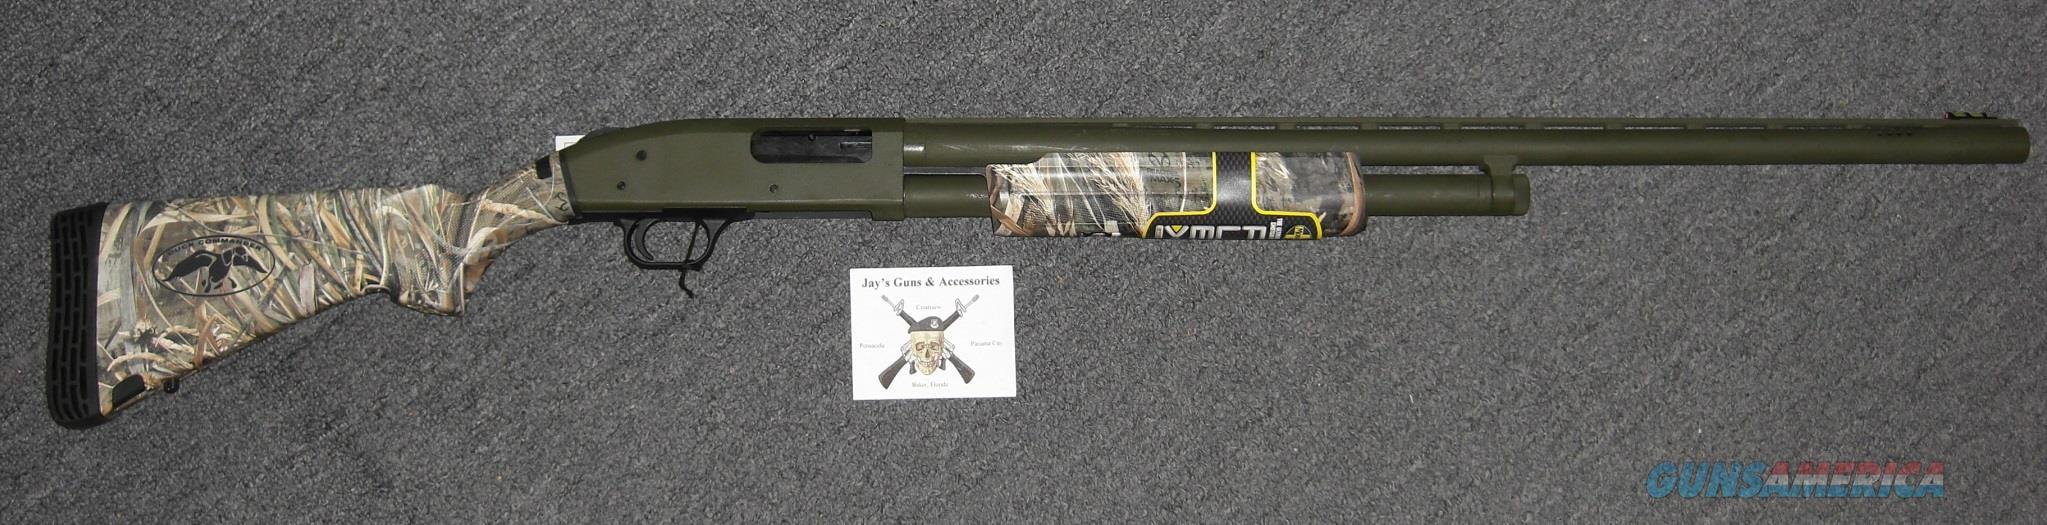 Mossberg 500 Flex Duck Commander  Guns > Shotguns > Mossberg Shotguns > Pump > Sporting